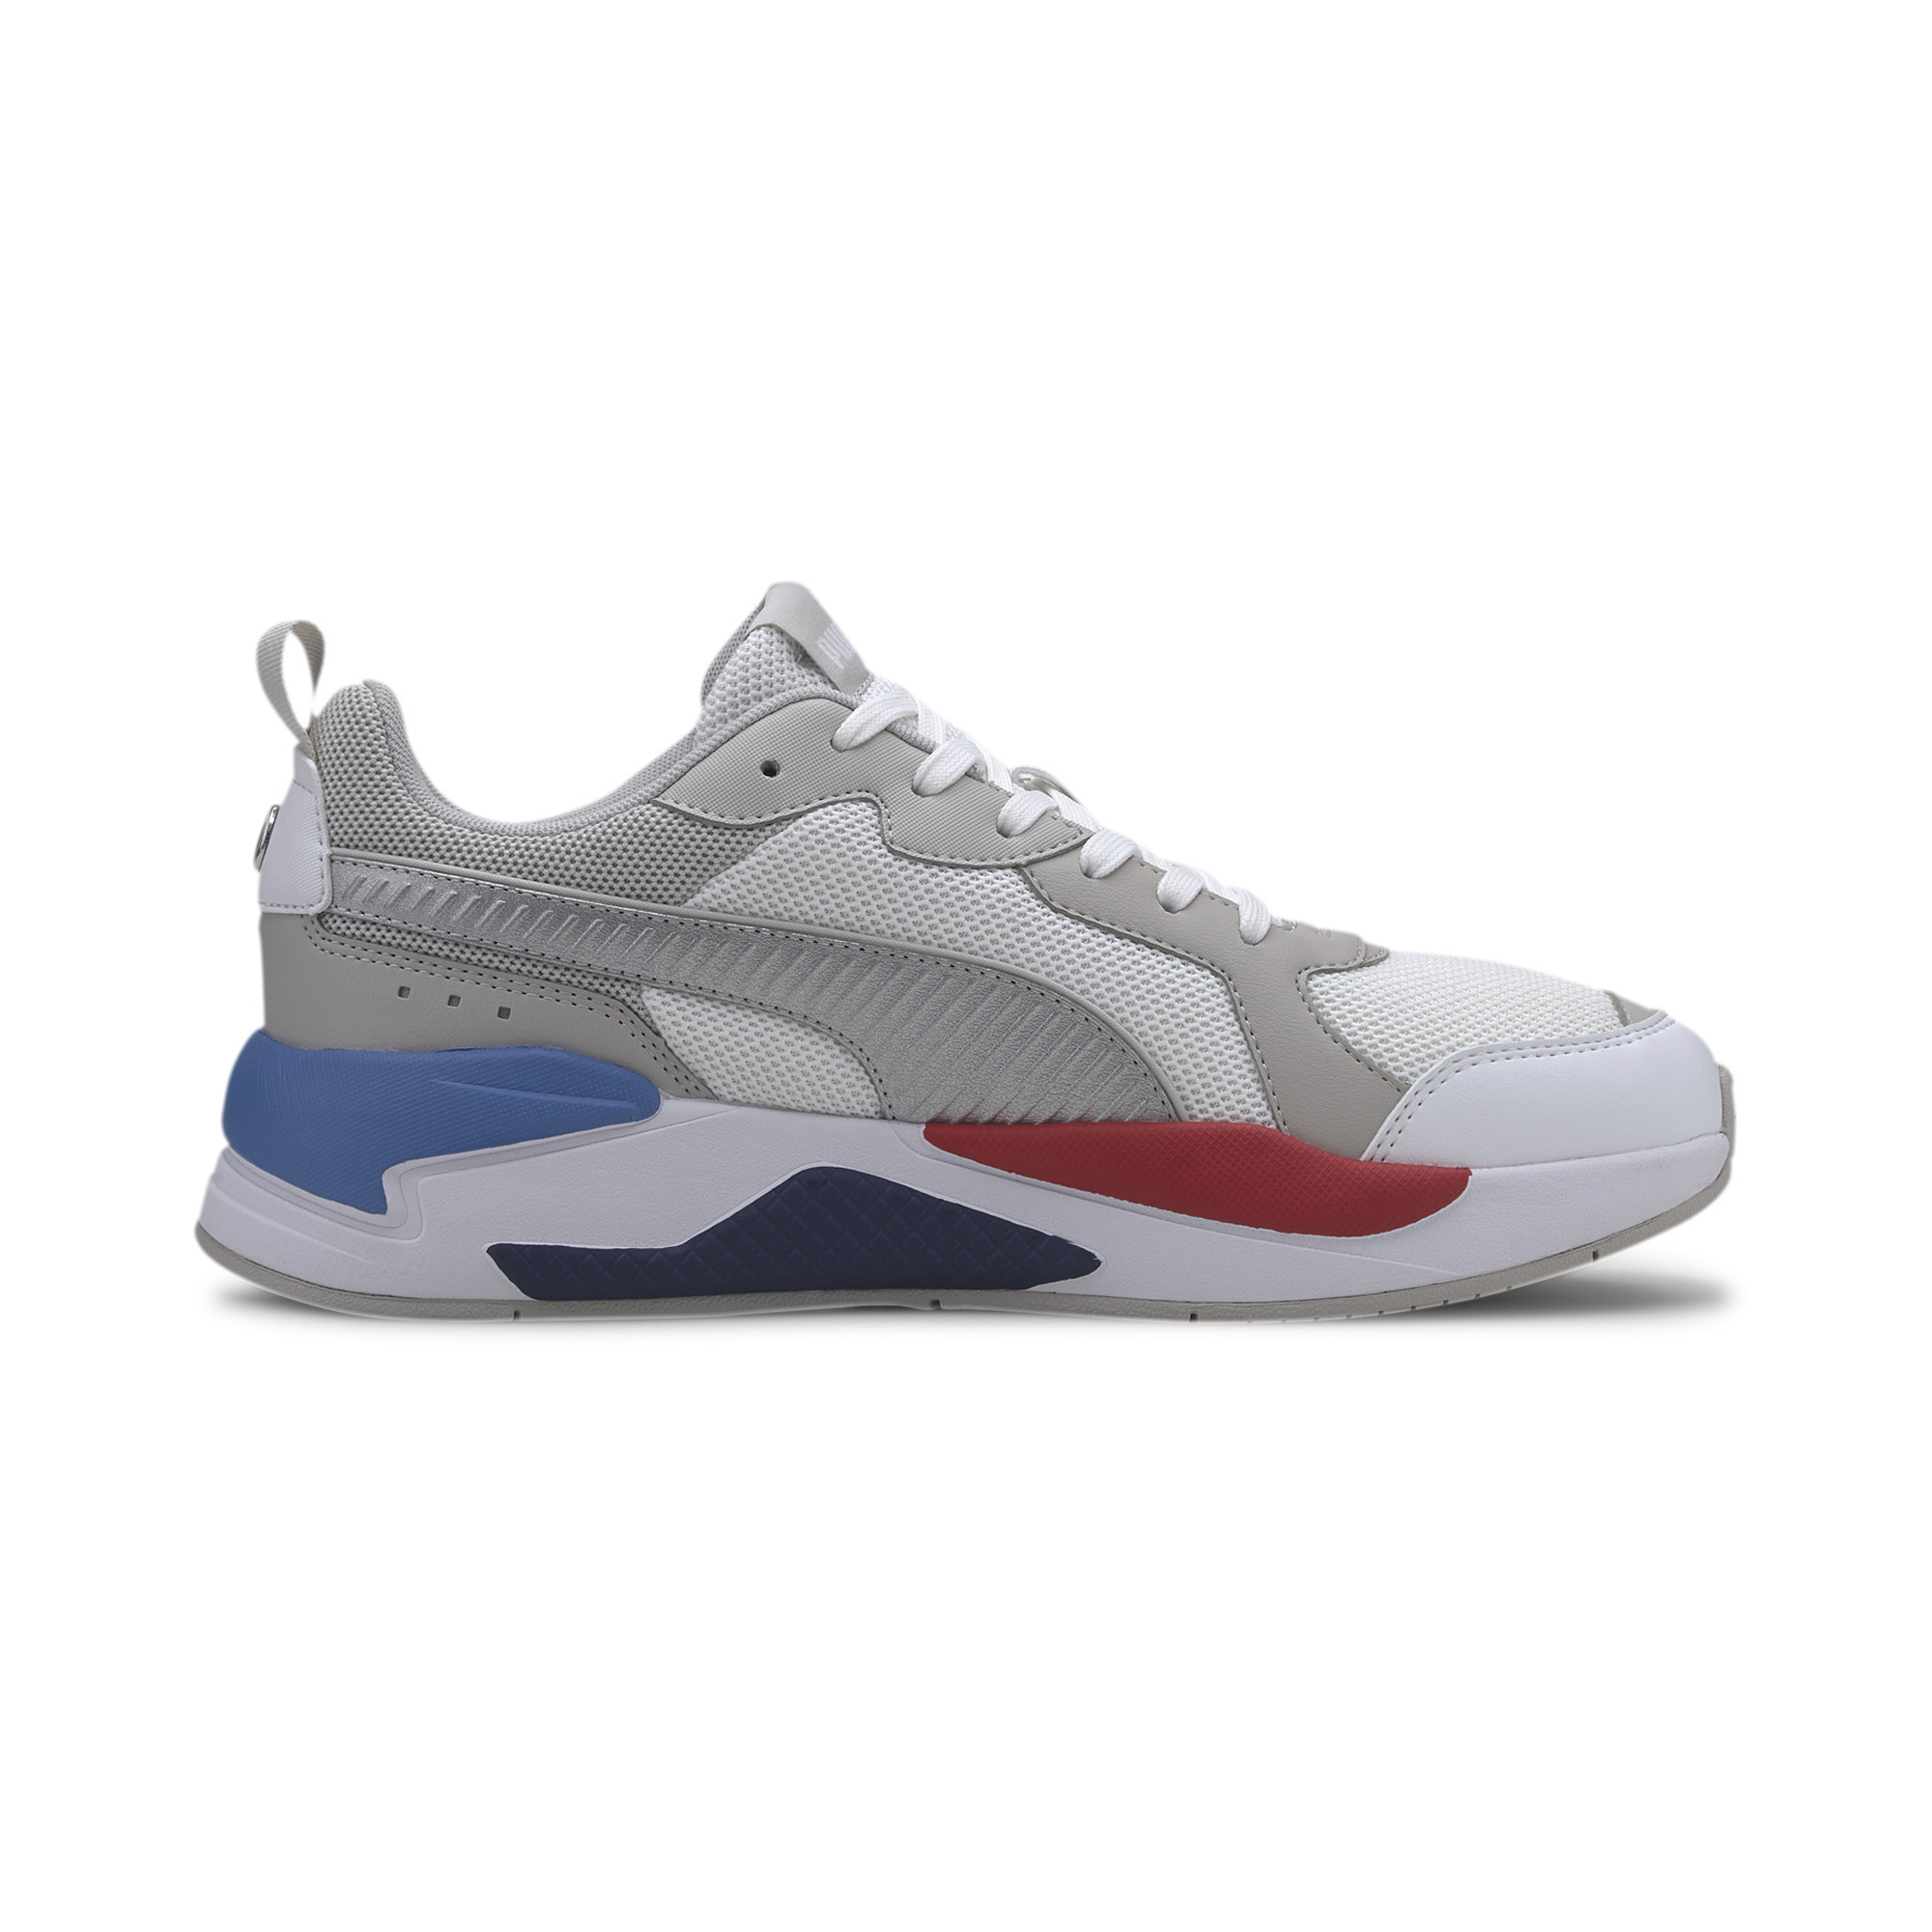 PUMA-Men-039-s-BMW-M-Motorsport-X-RAY-Sneakers thumbnail 15